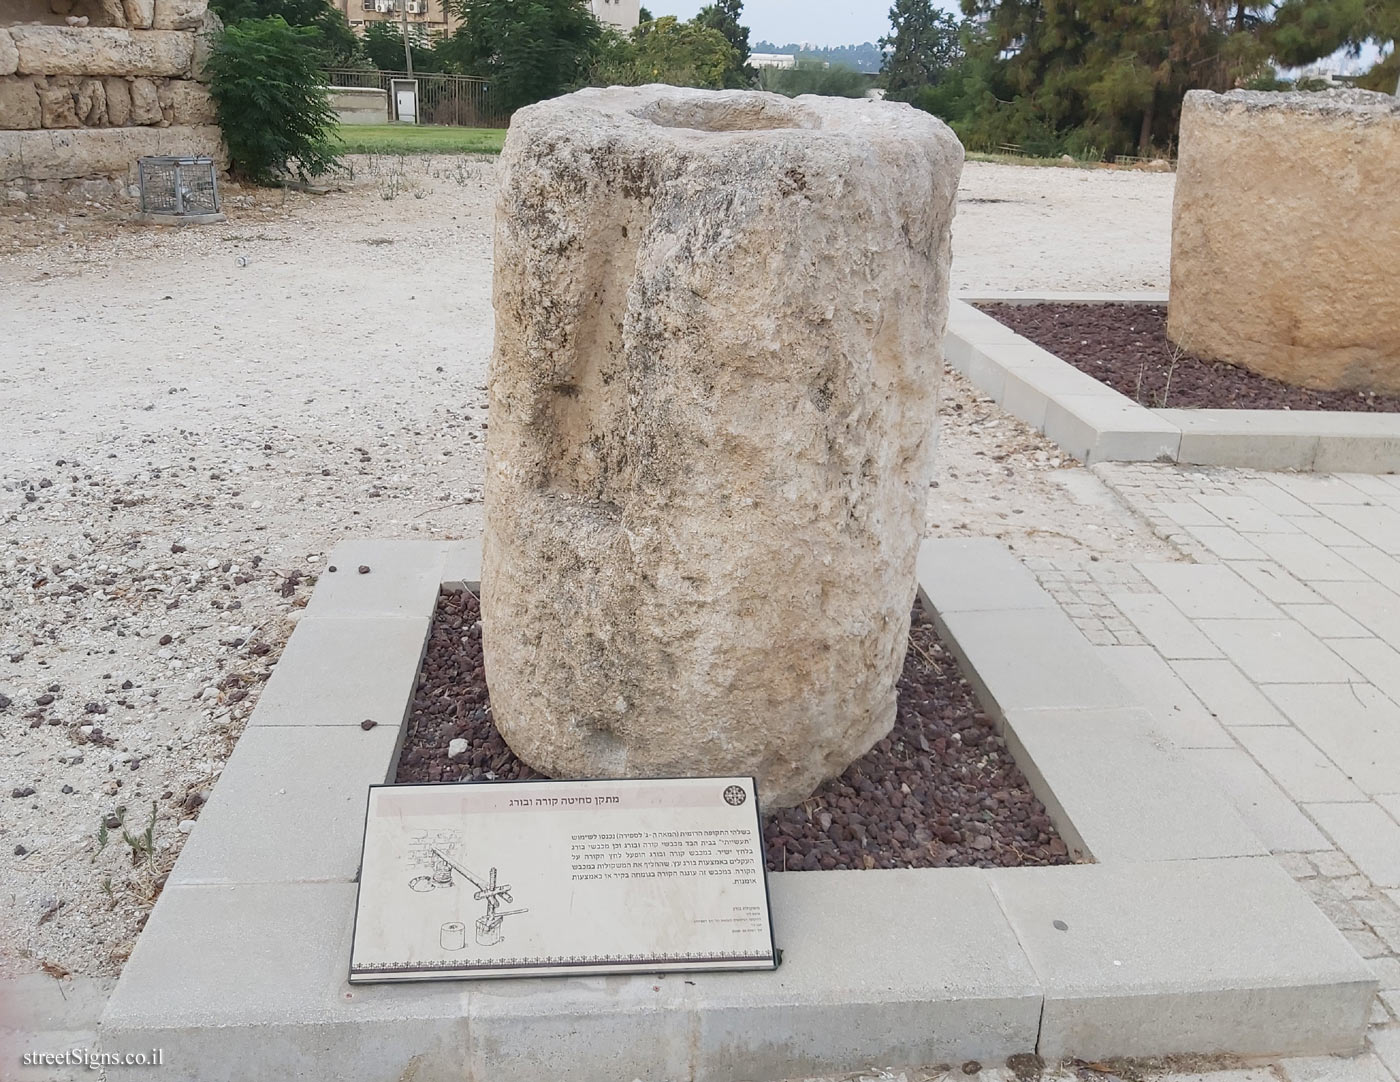 Azor - Archaeological Garden - Squeezing device beam and screw - Ha-Histadrut St 11, Azor, Israel